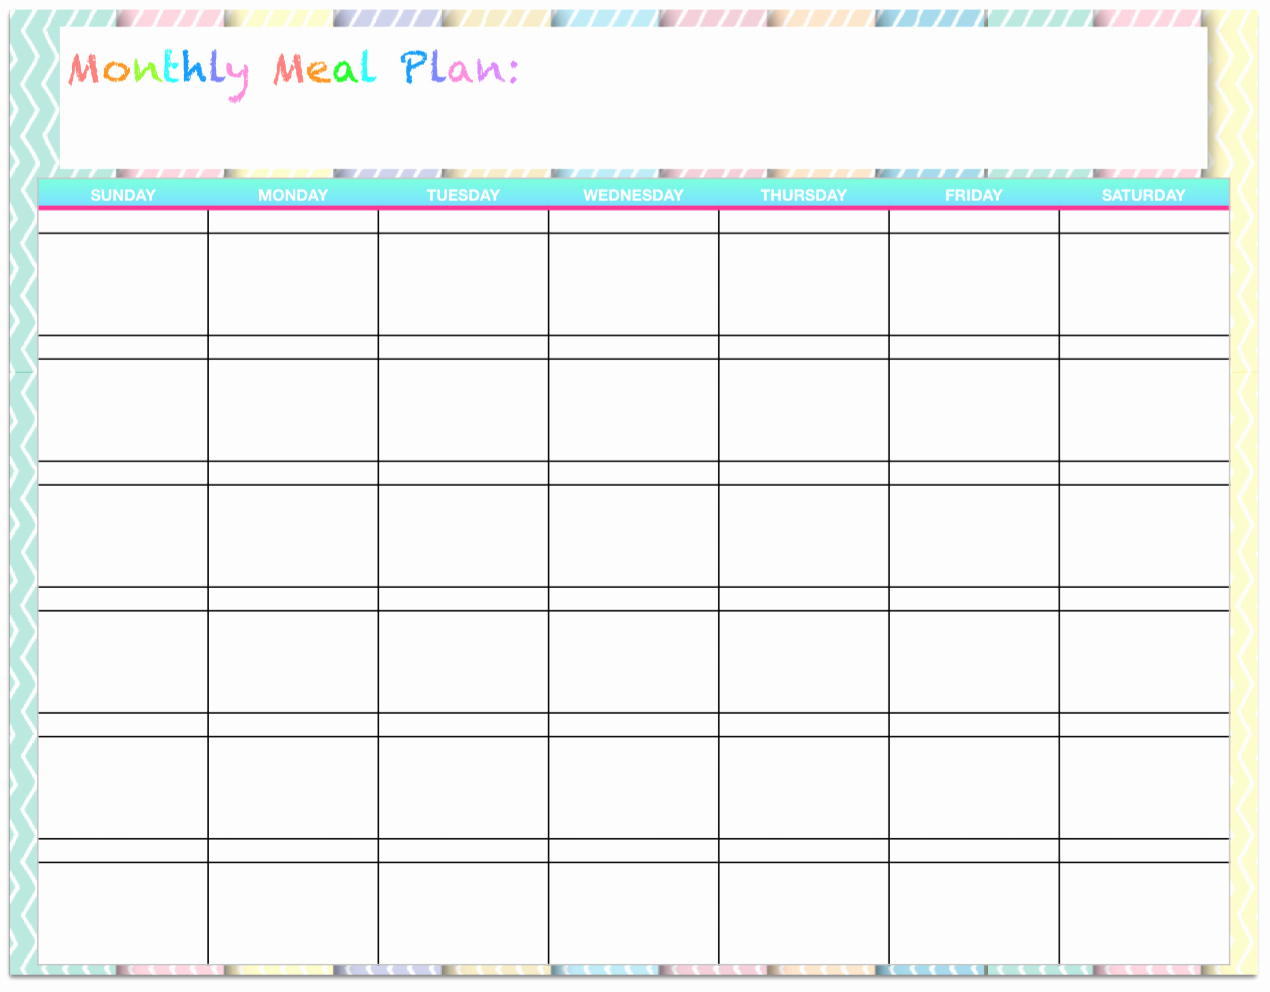 Monthly Meal Planner Template Awesome Free Templates Monthly Menu Planners the Housewife Modern